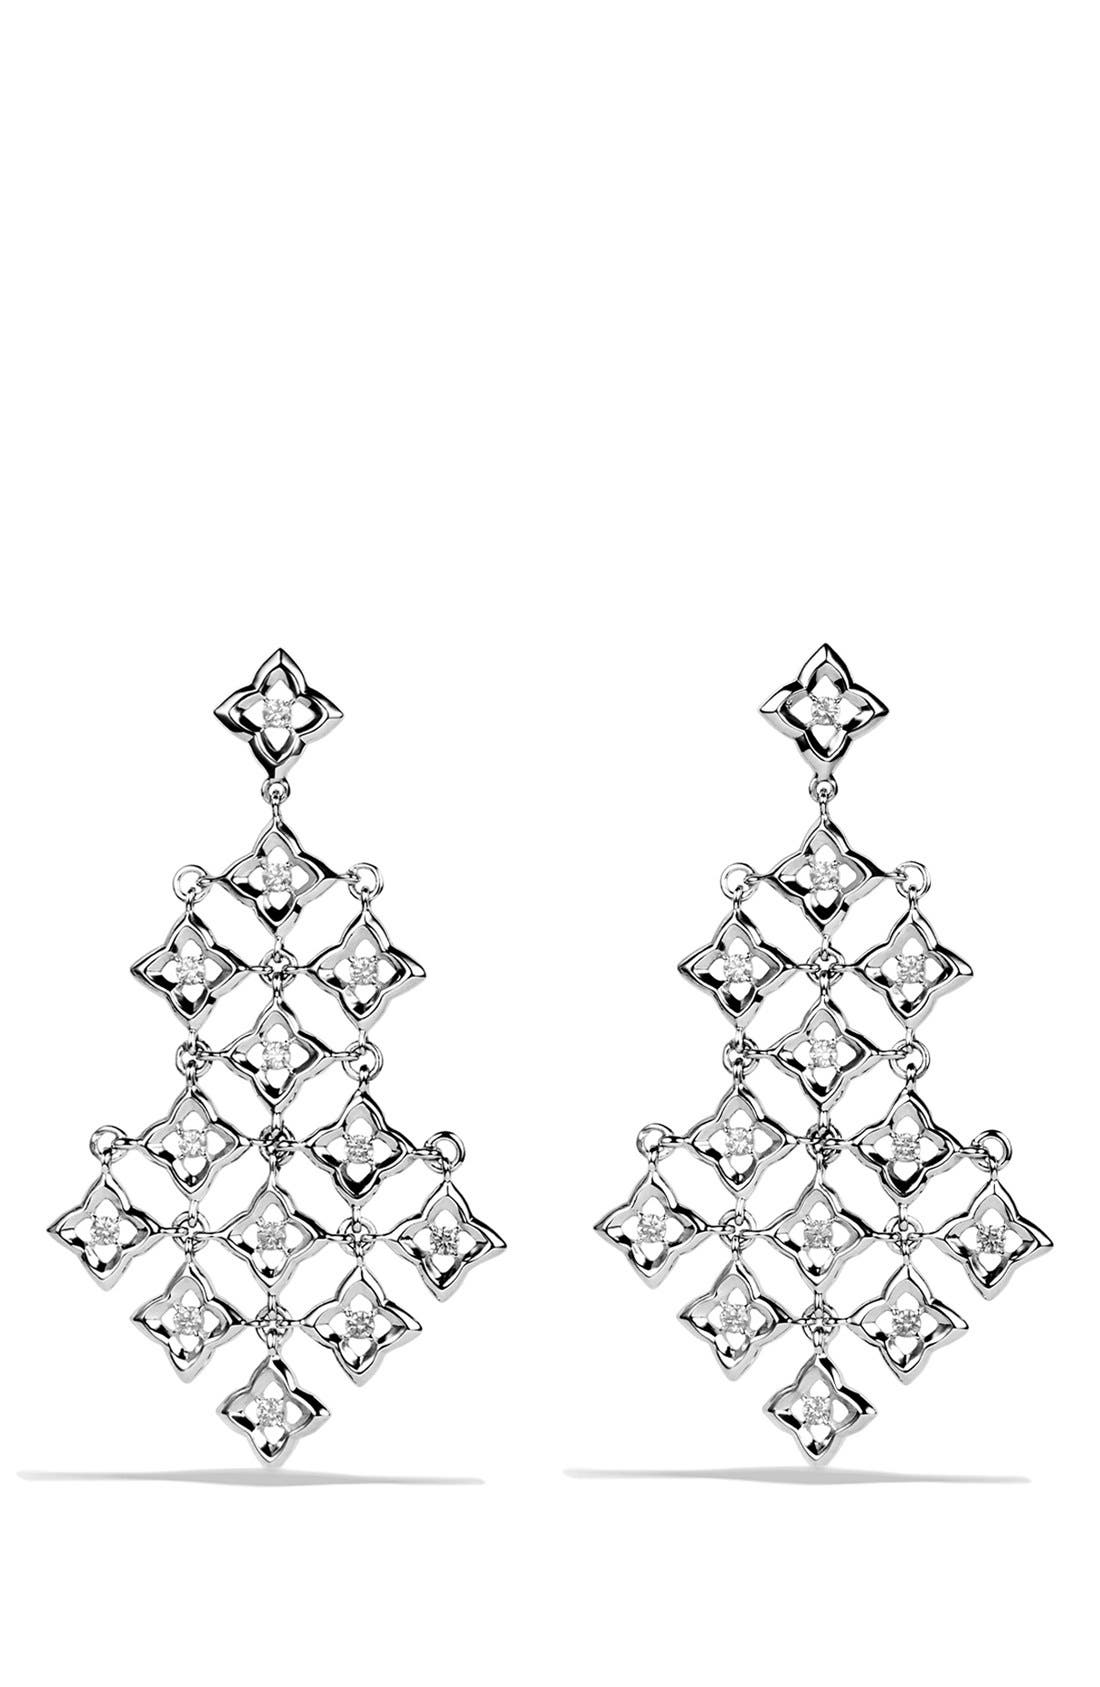 Alternate Image 1 Selected - David Yurman 'Quatrefoil' Chandelier Earrings with Diamonds